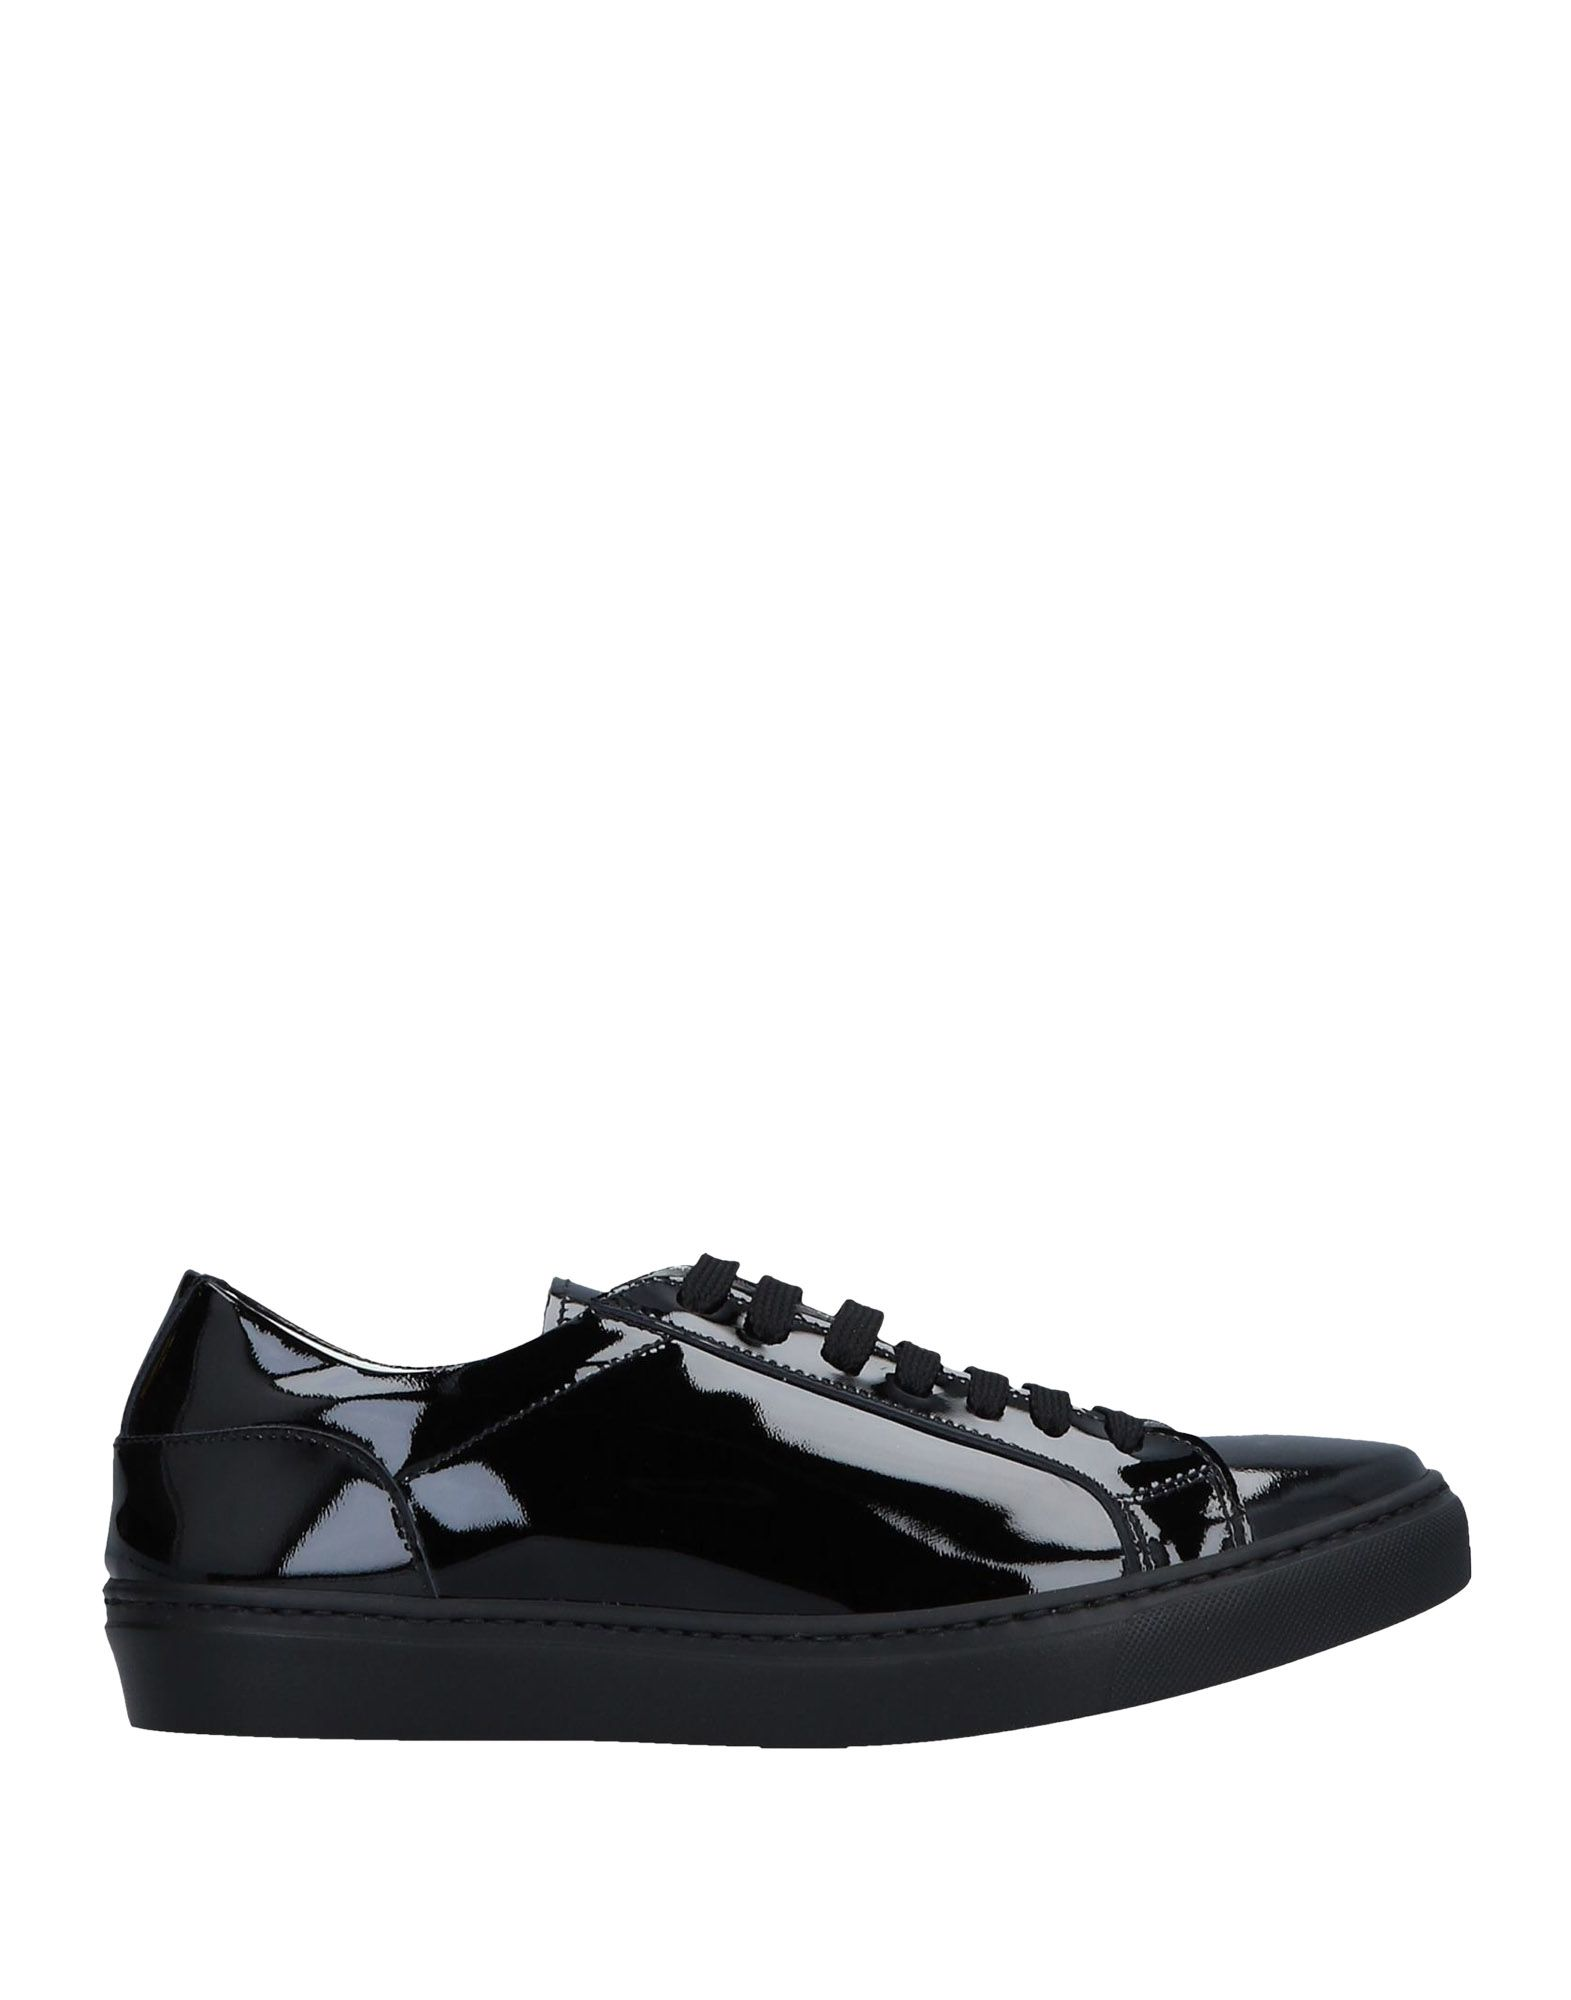 Rabatt Schuhe Doucal's Sneakers Damen  11506592RV